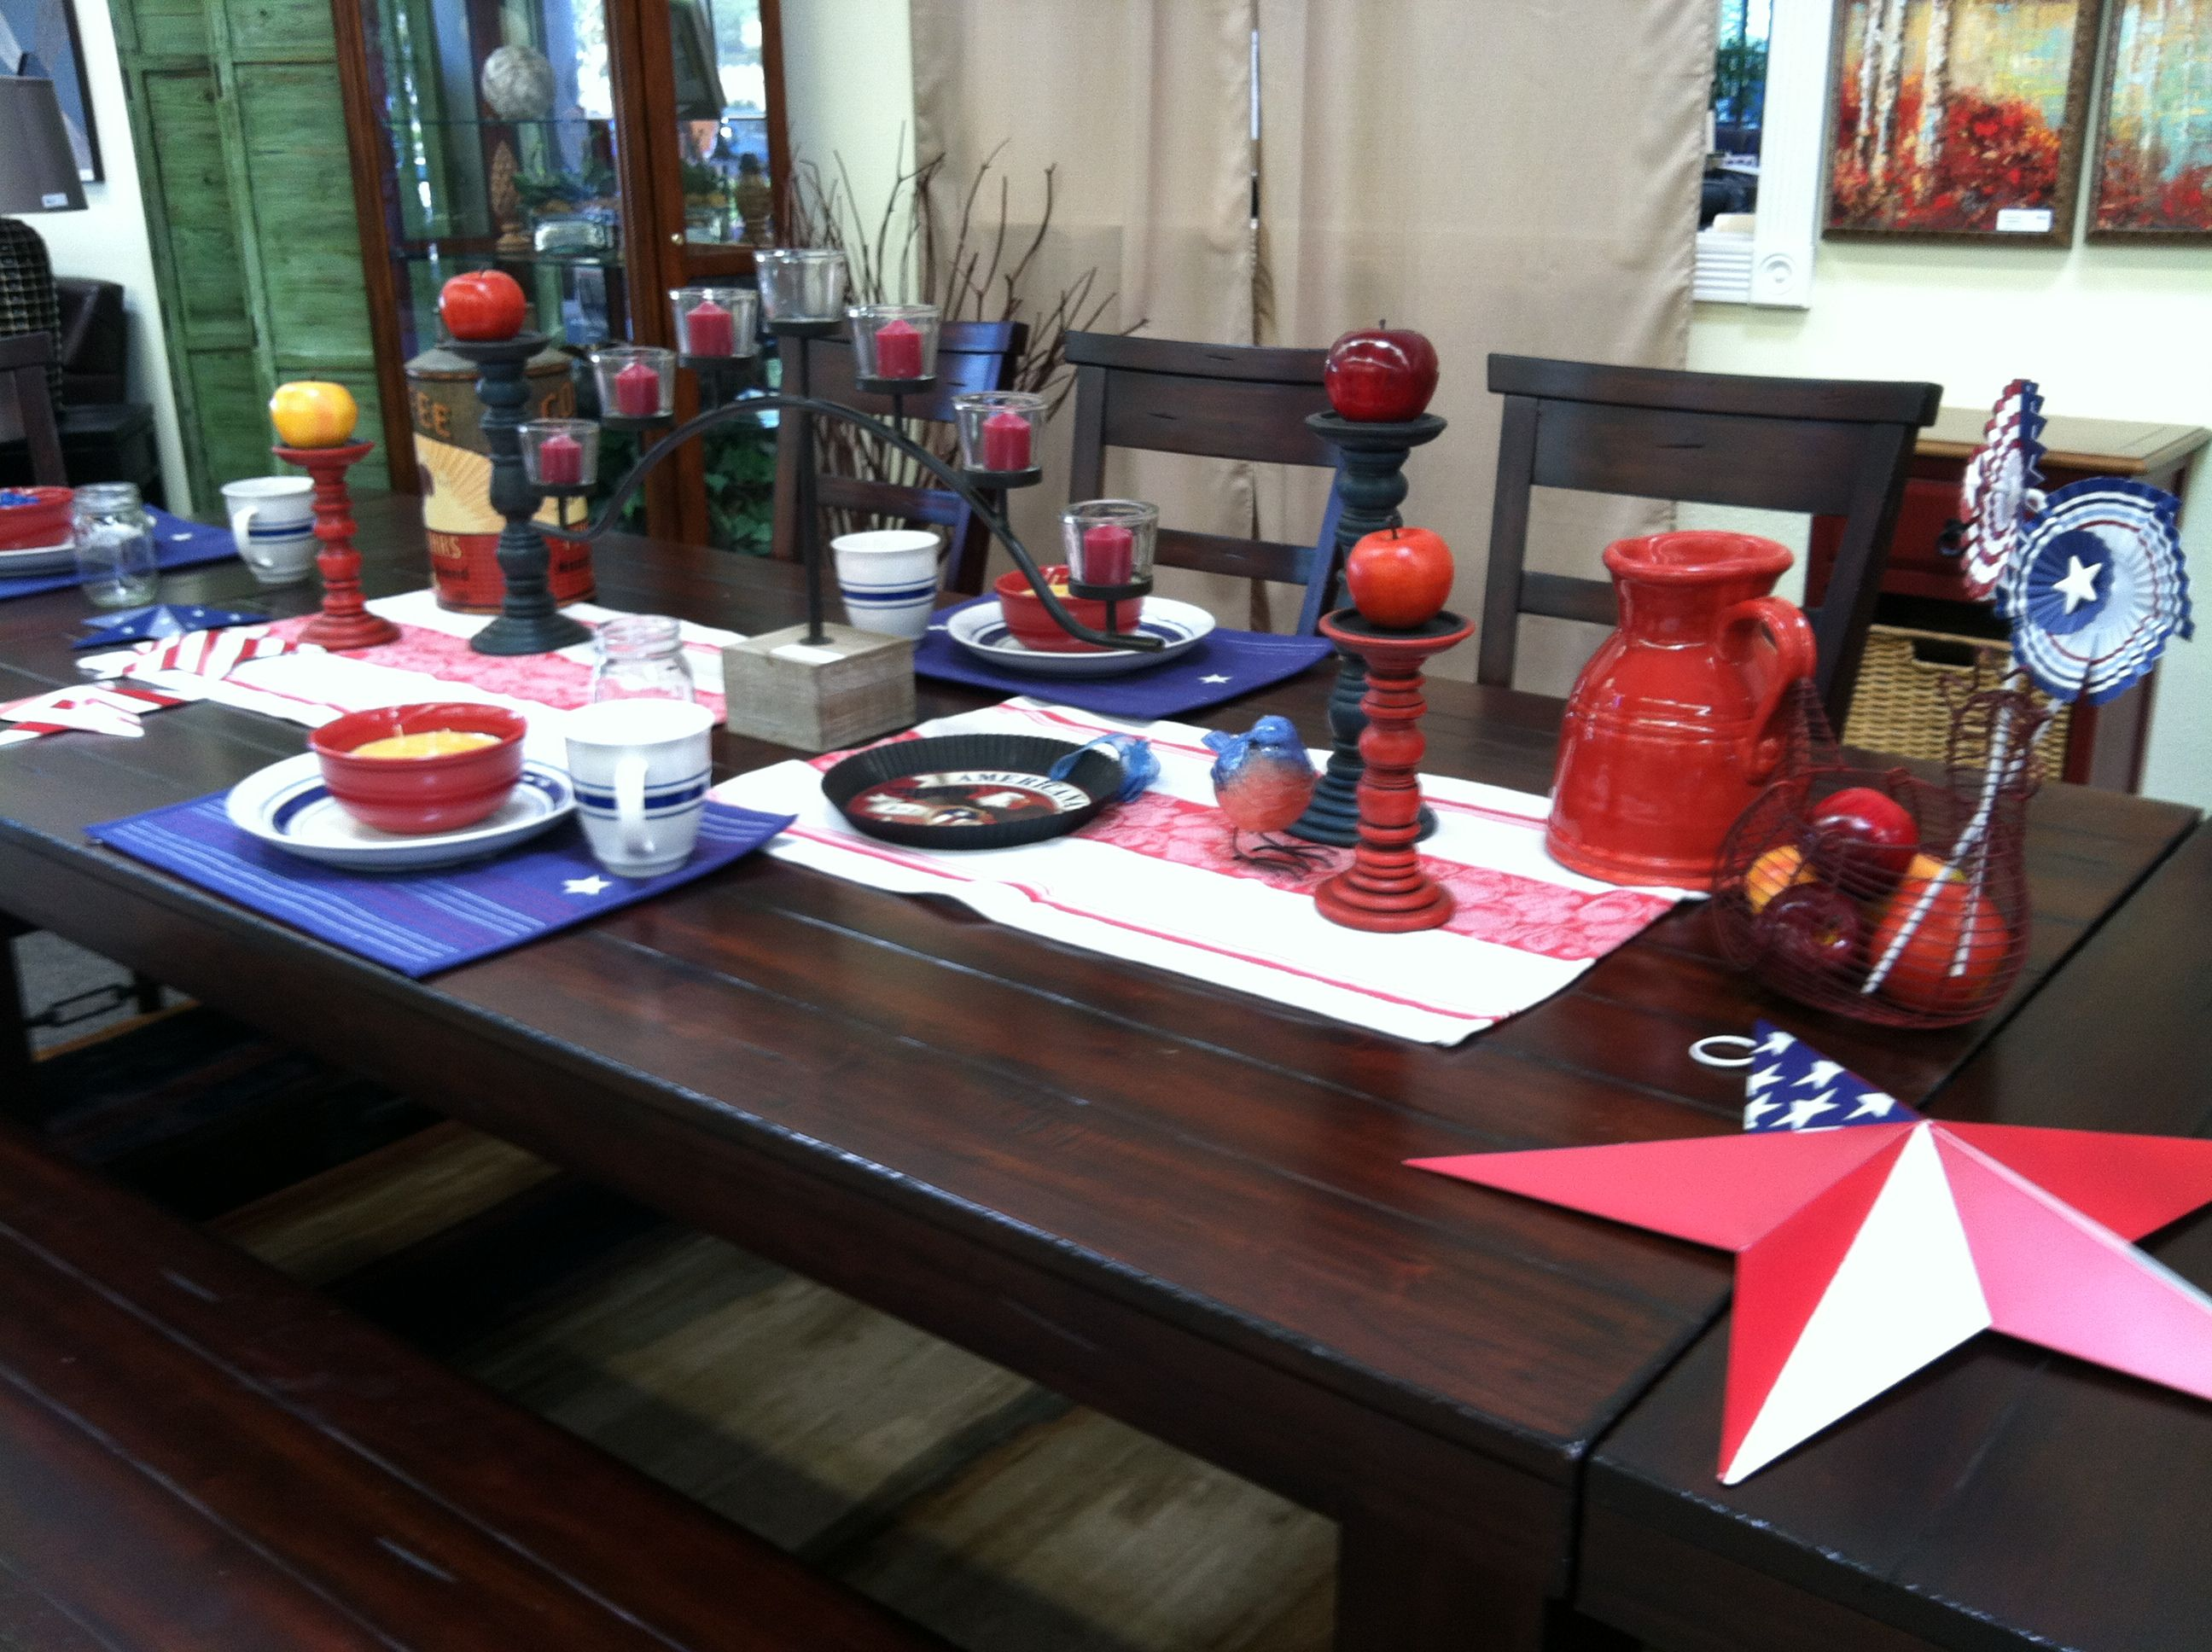 jerome s vineyard dining table decorated for 4th of july